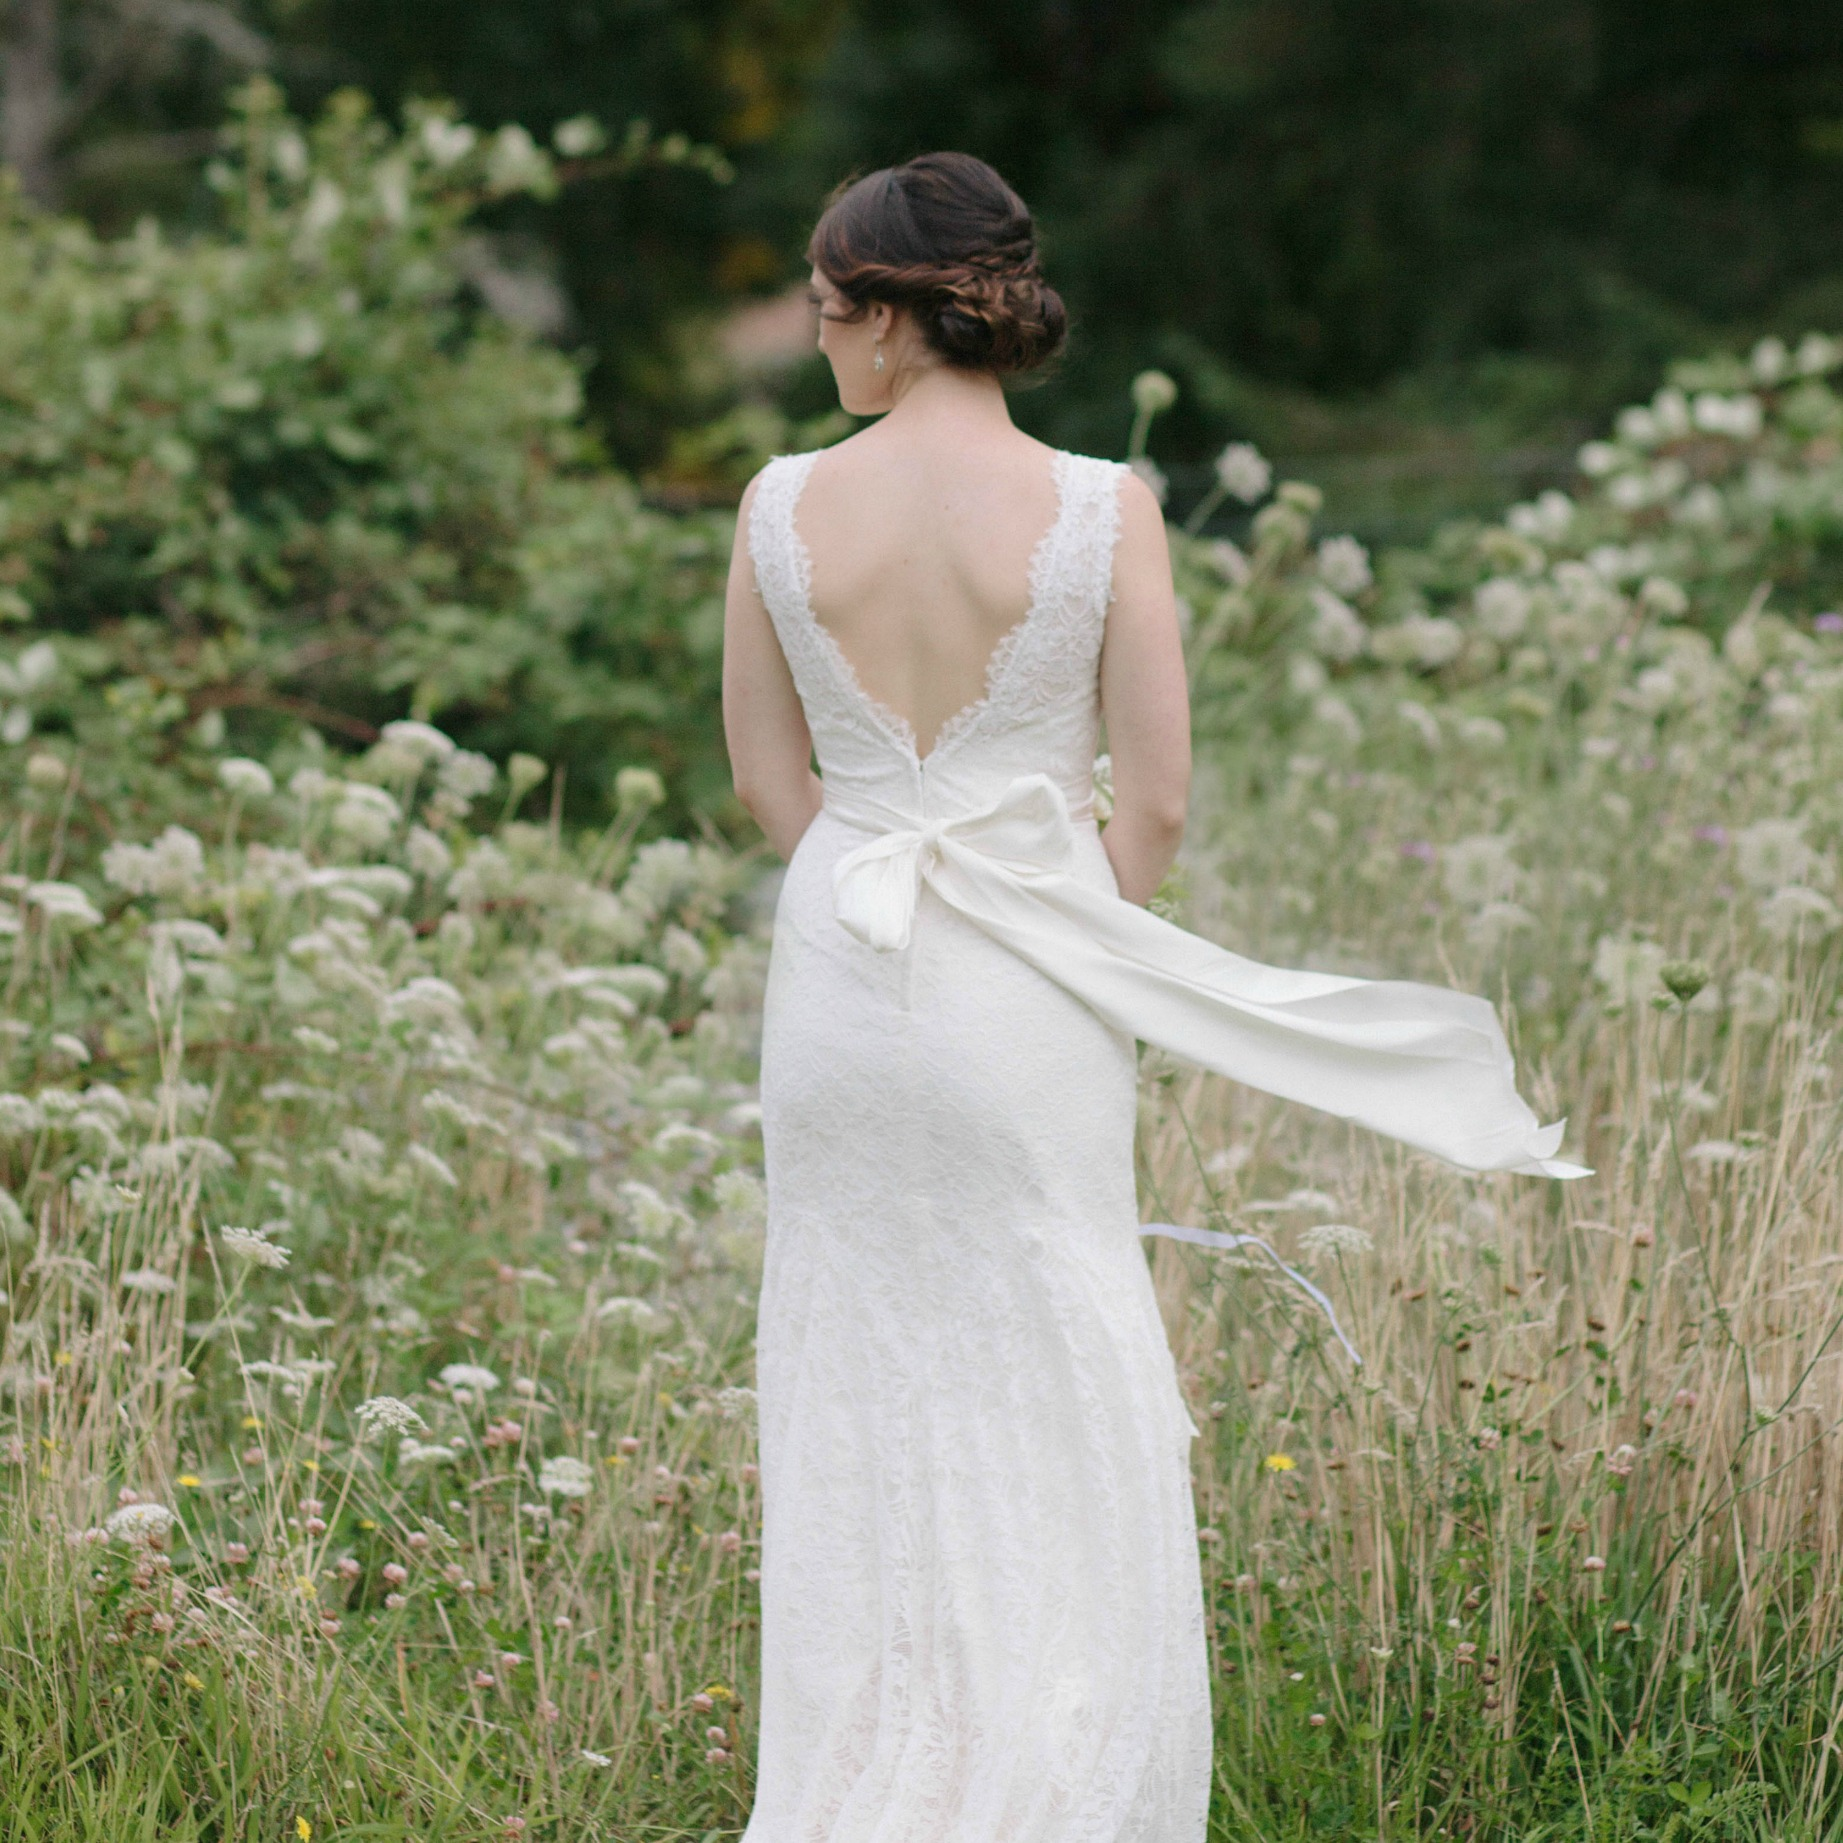 I had an absolutely wonderful dress shopping experience at The White Peony. From the very first phone call to book my appointment, every step of the process was so simple. The boutique not only has an incredible collection of gowns but also the most stunning accessories. I would not hesitate in recommending! ~ Kate